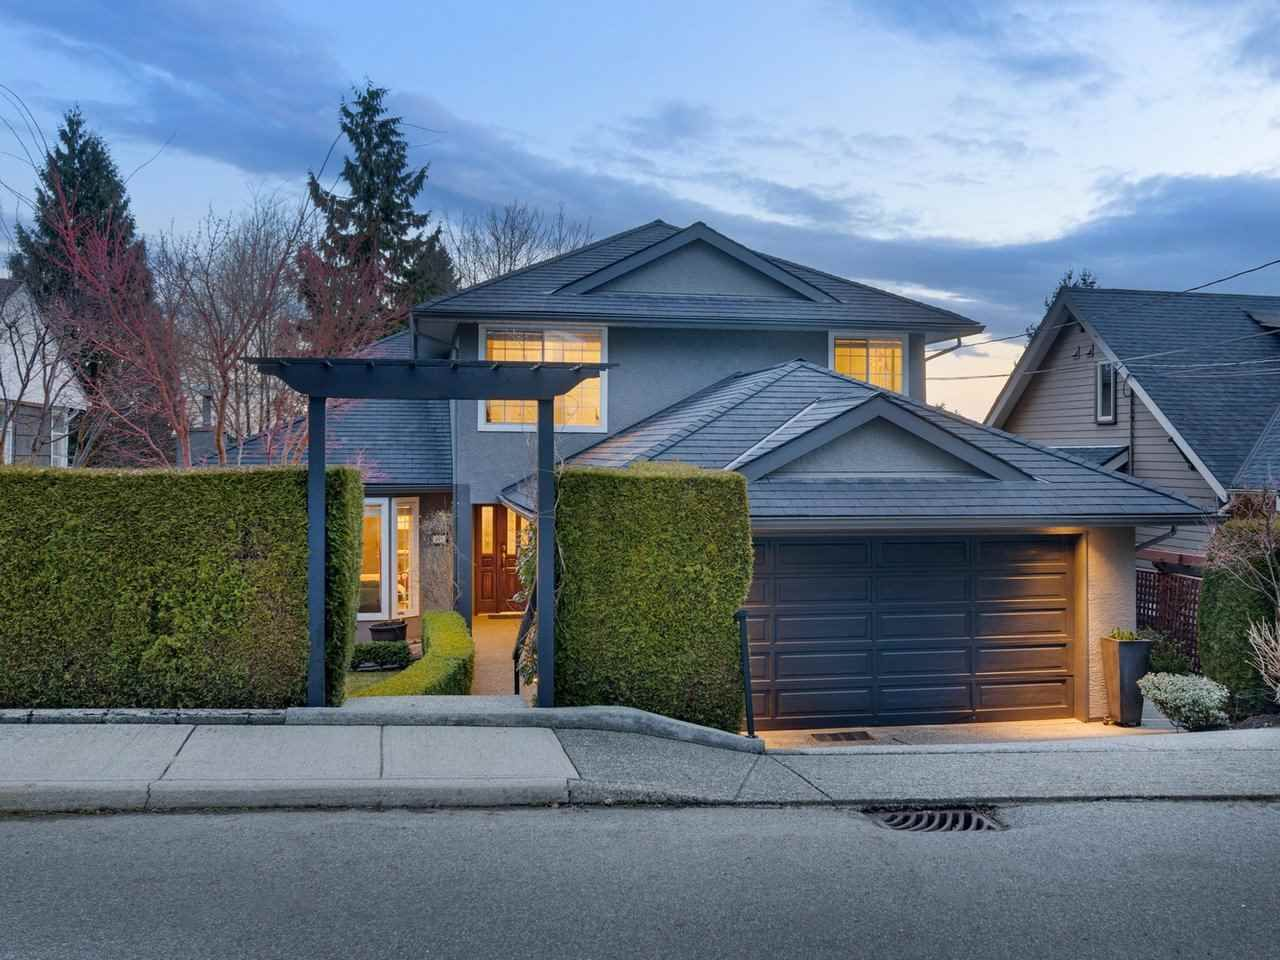 Main Photo: 167 W ST. JAMES Road in North Vancouver: Upper Lonsdale House for sale : MLS®# R2551883